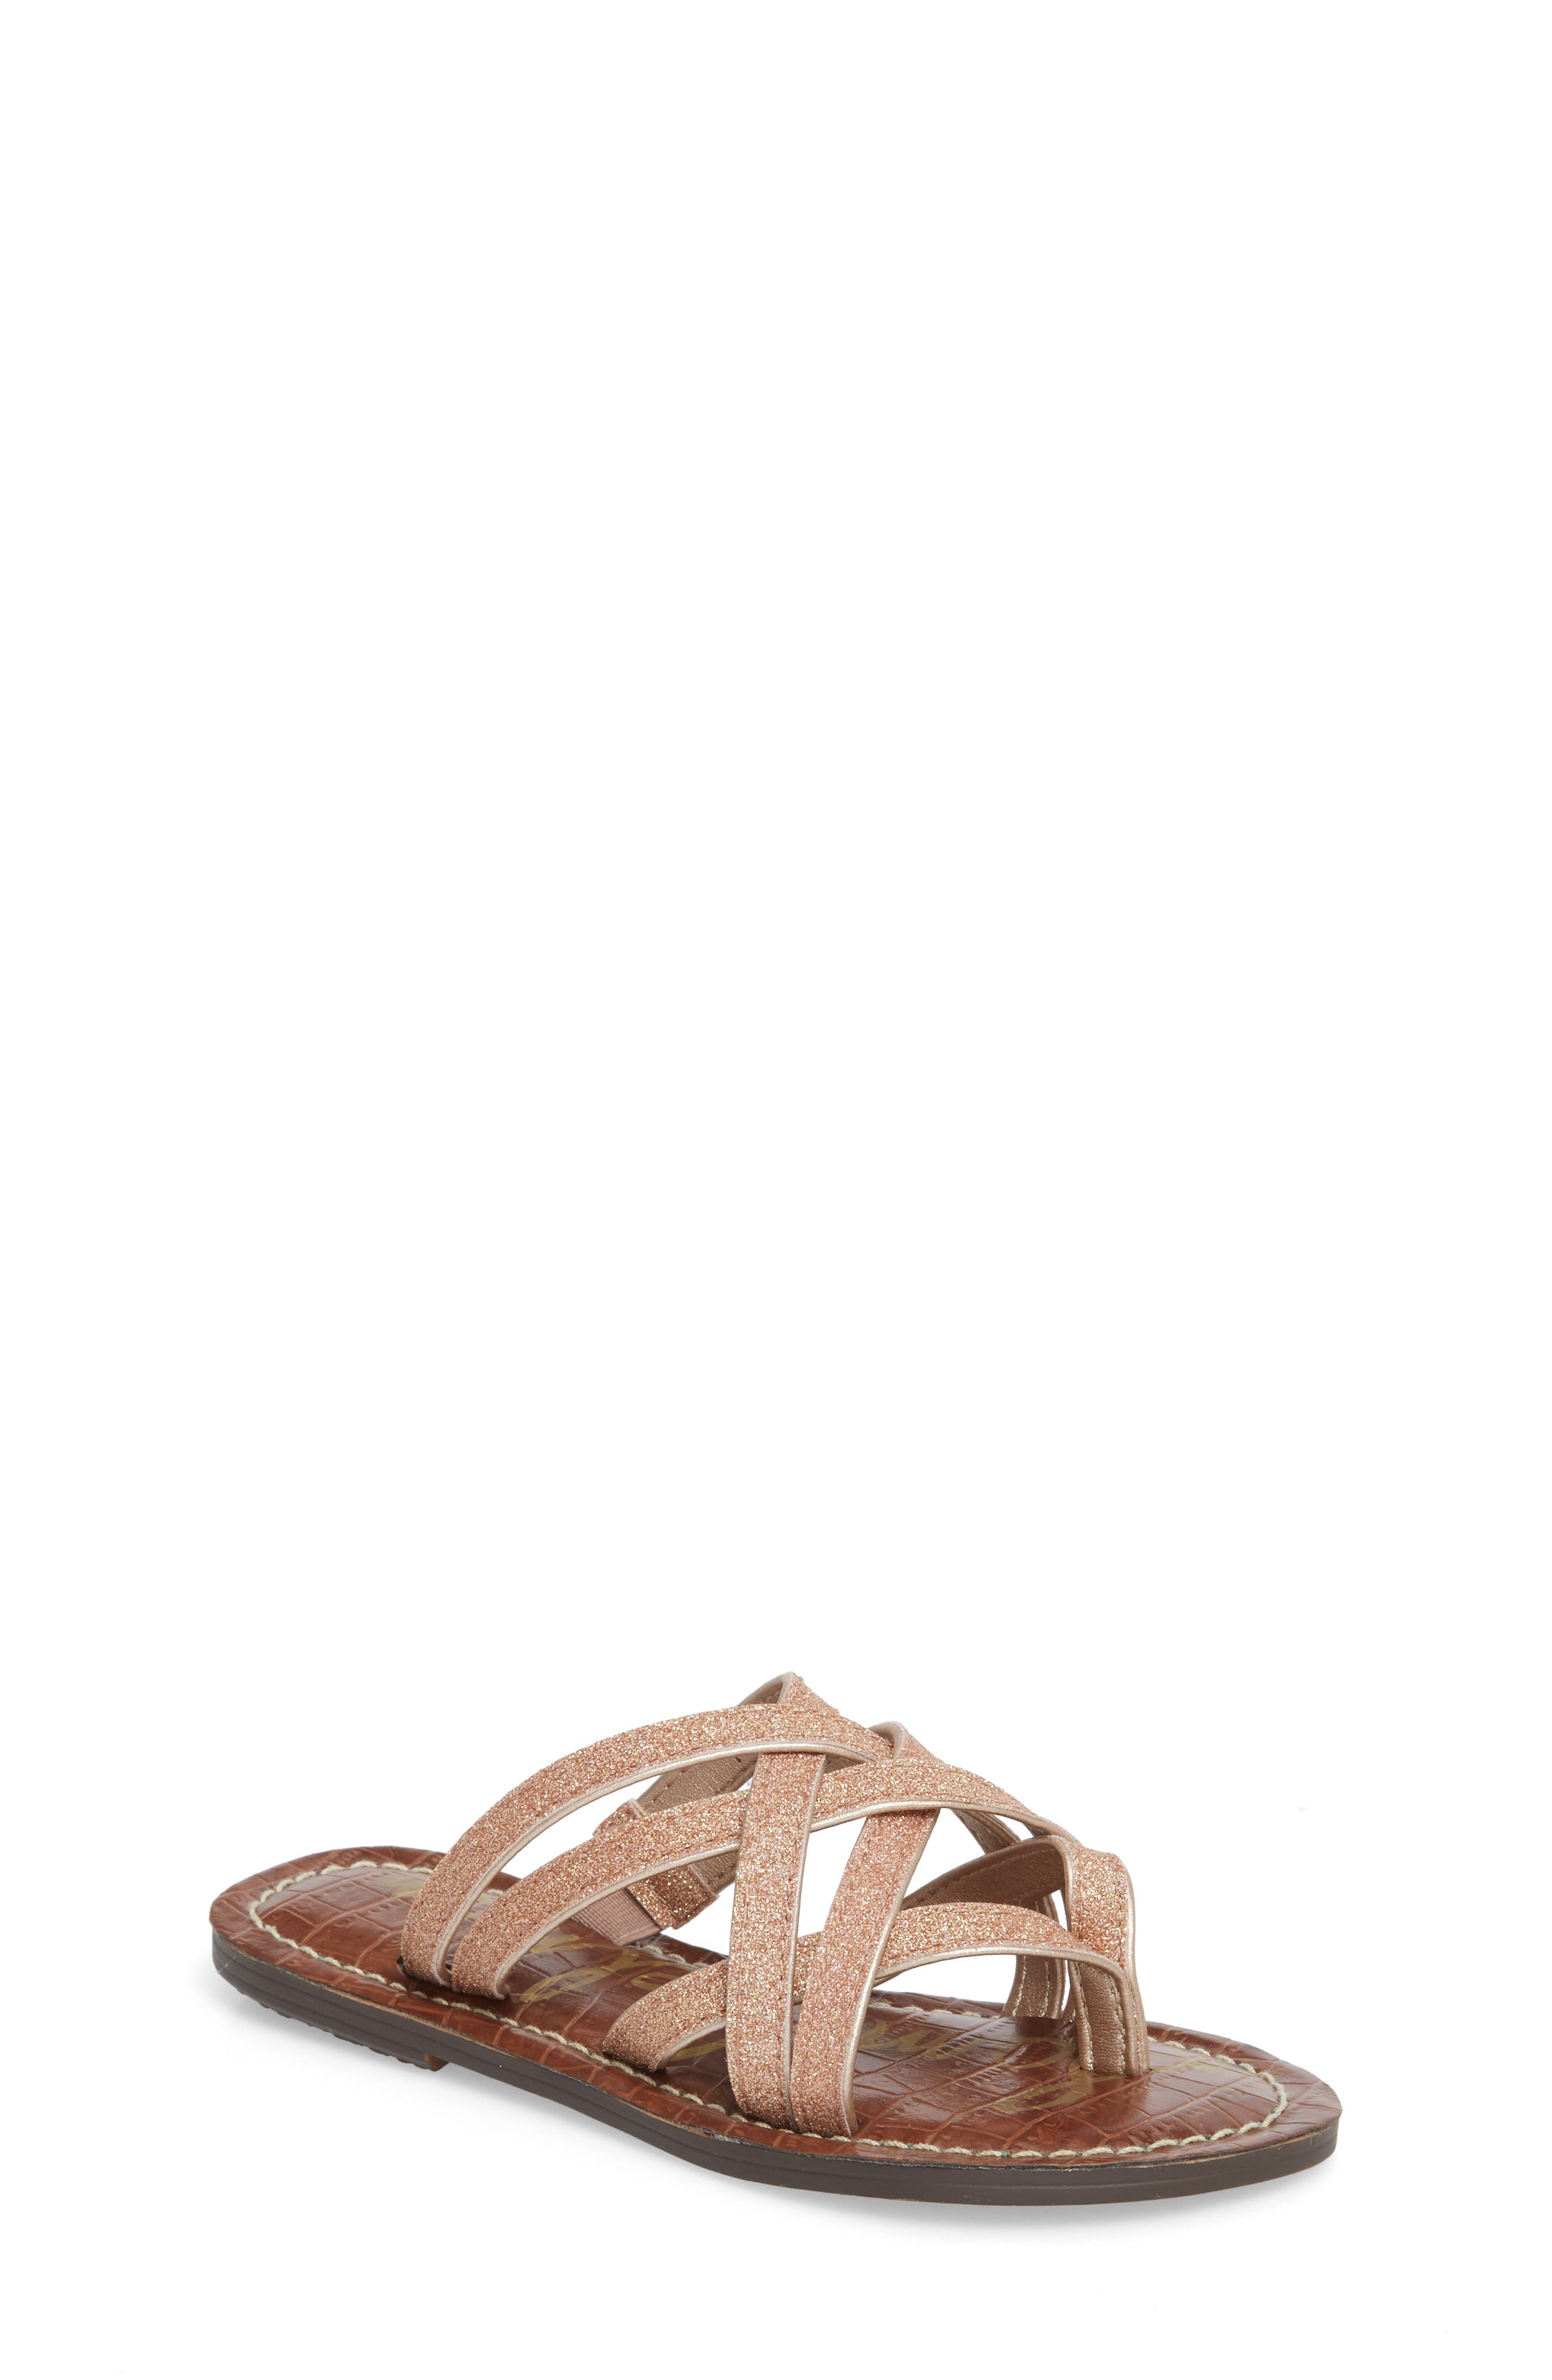 Sam Edelman Georgette Glitter Flat Sandal (Toddler, Little Kid & Big Kid)